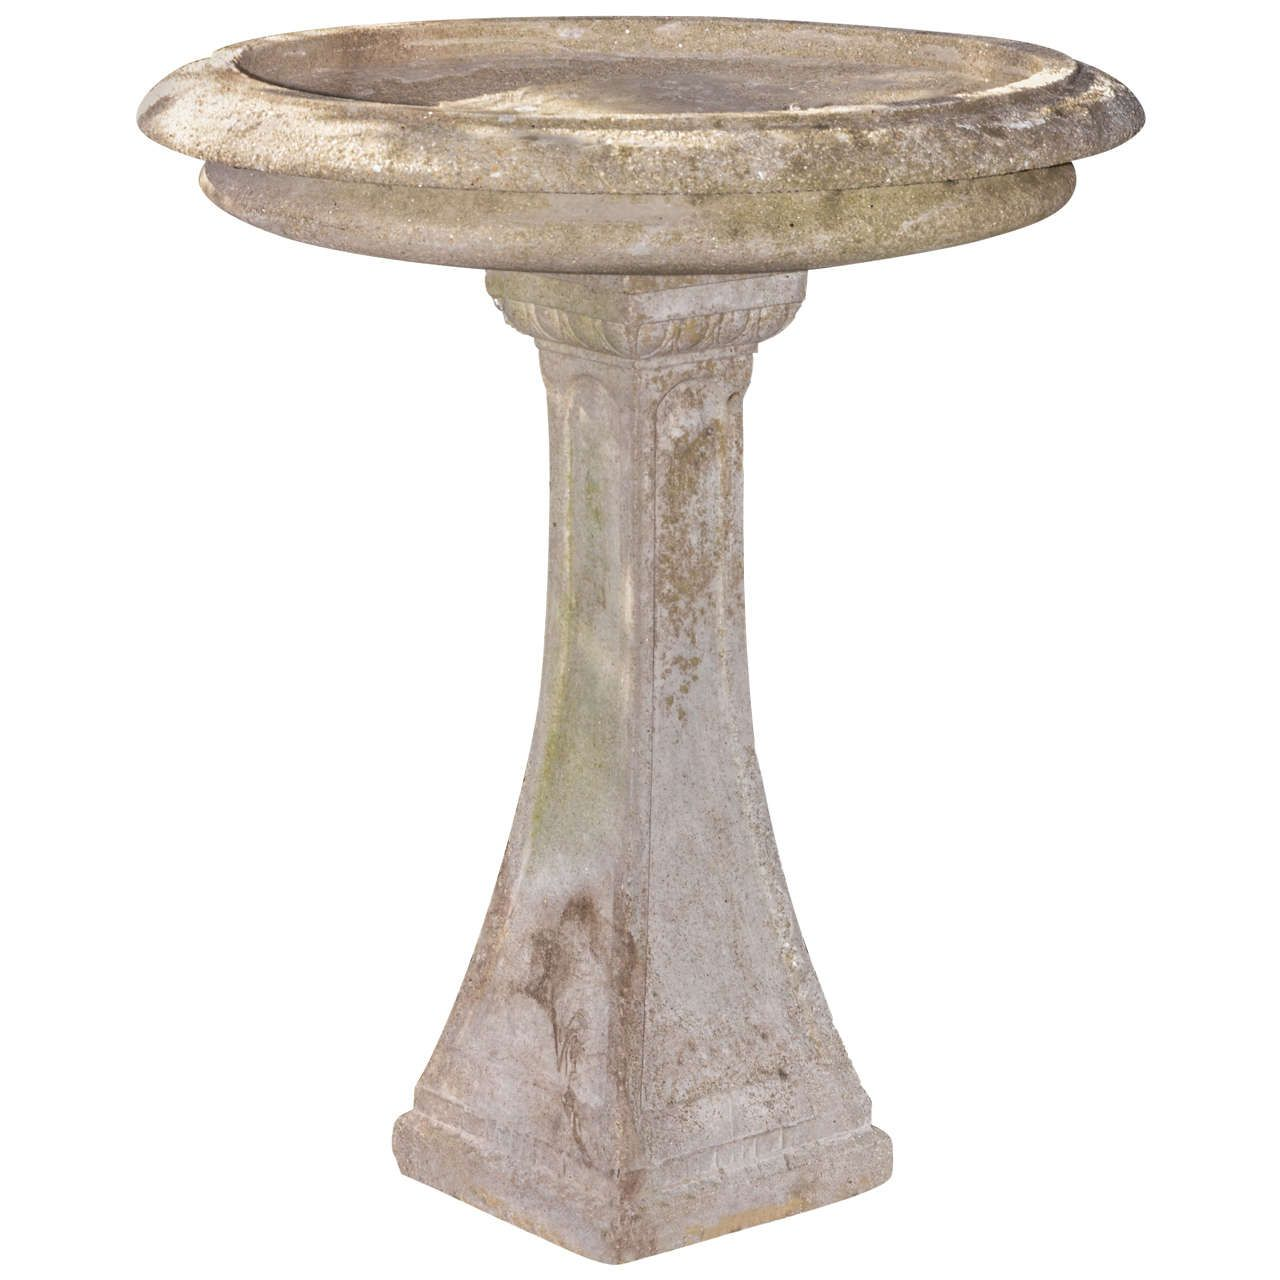 English Regency Style 1920's Bird Bath